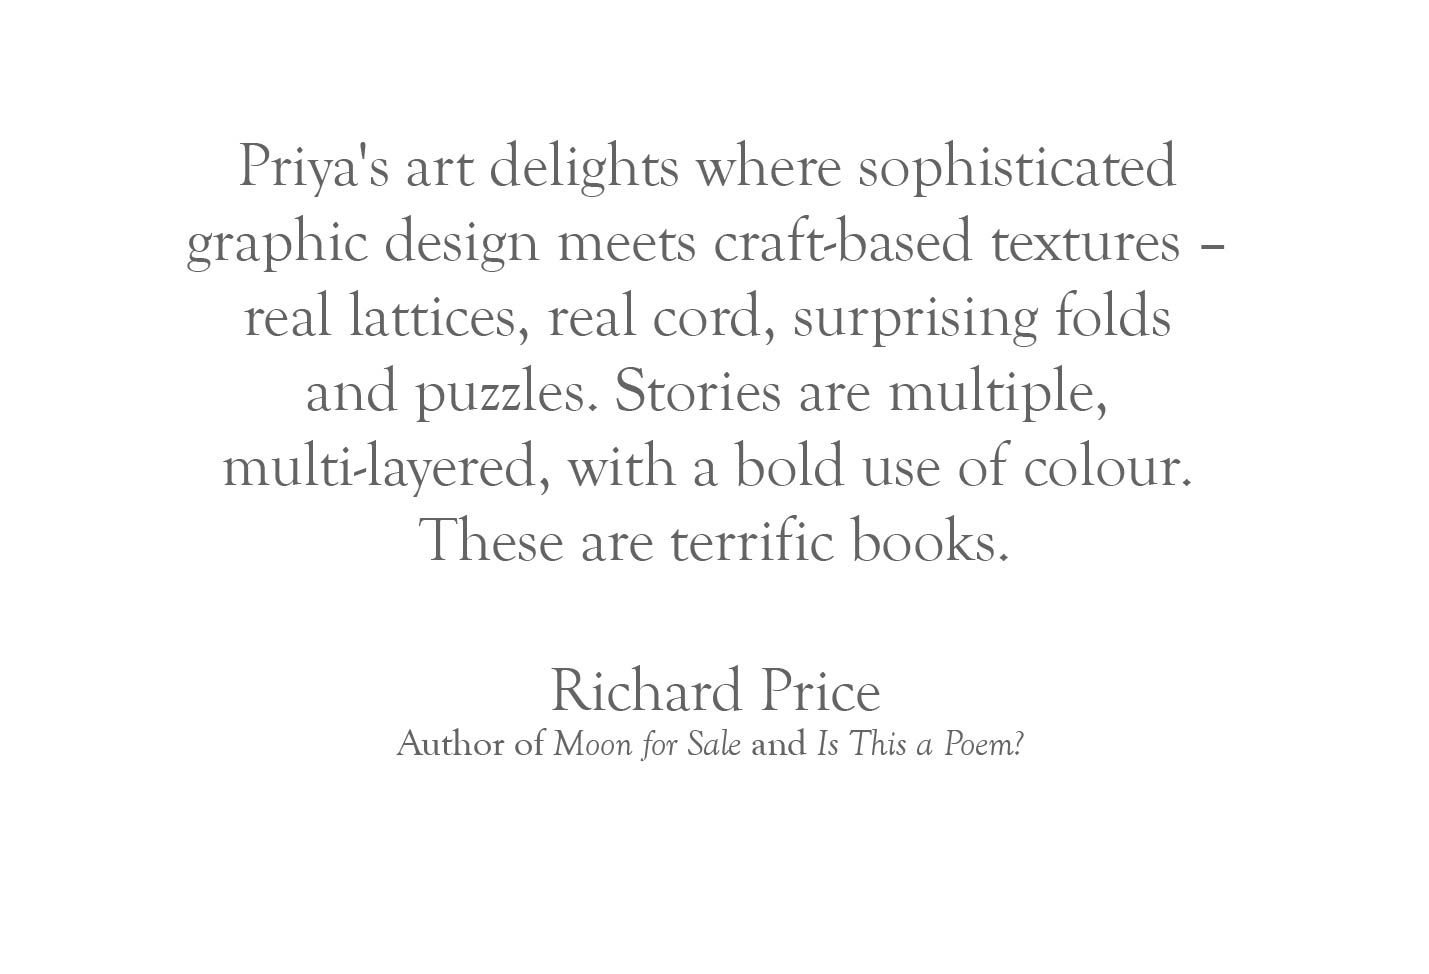 Richard Price-01.jpg